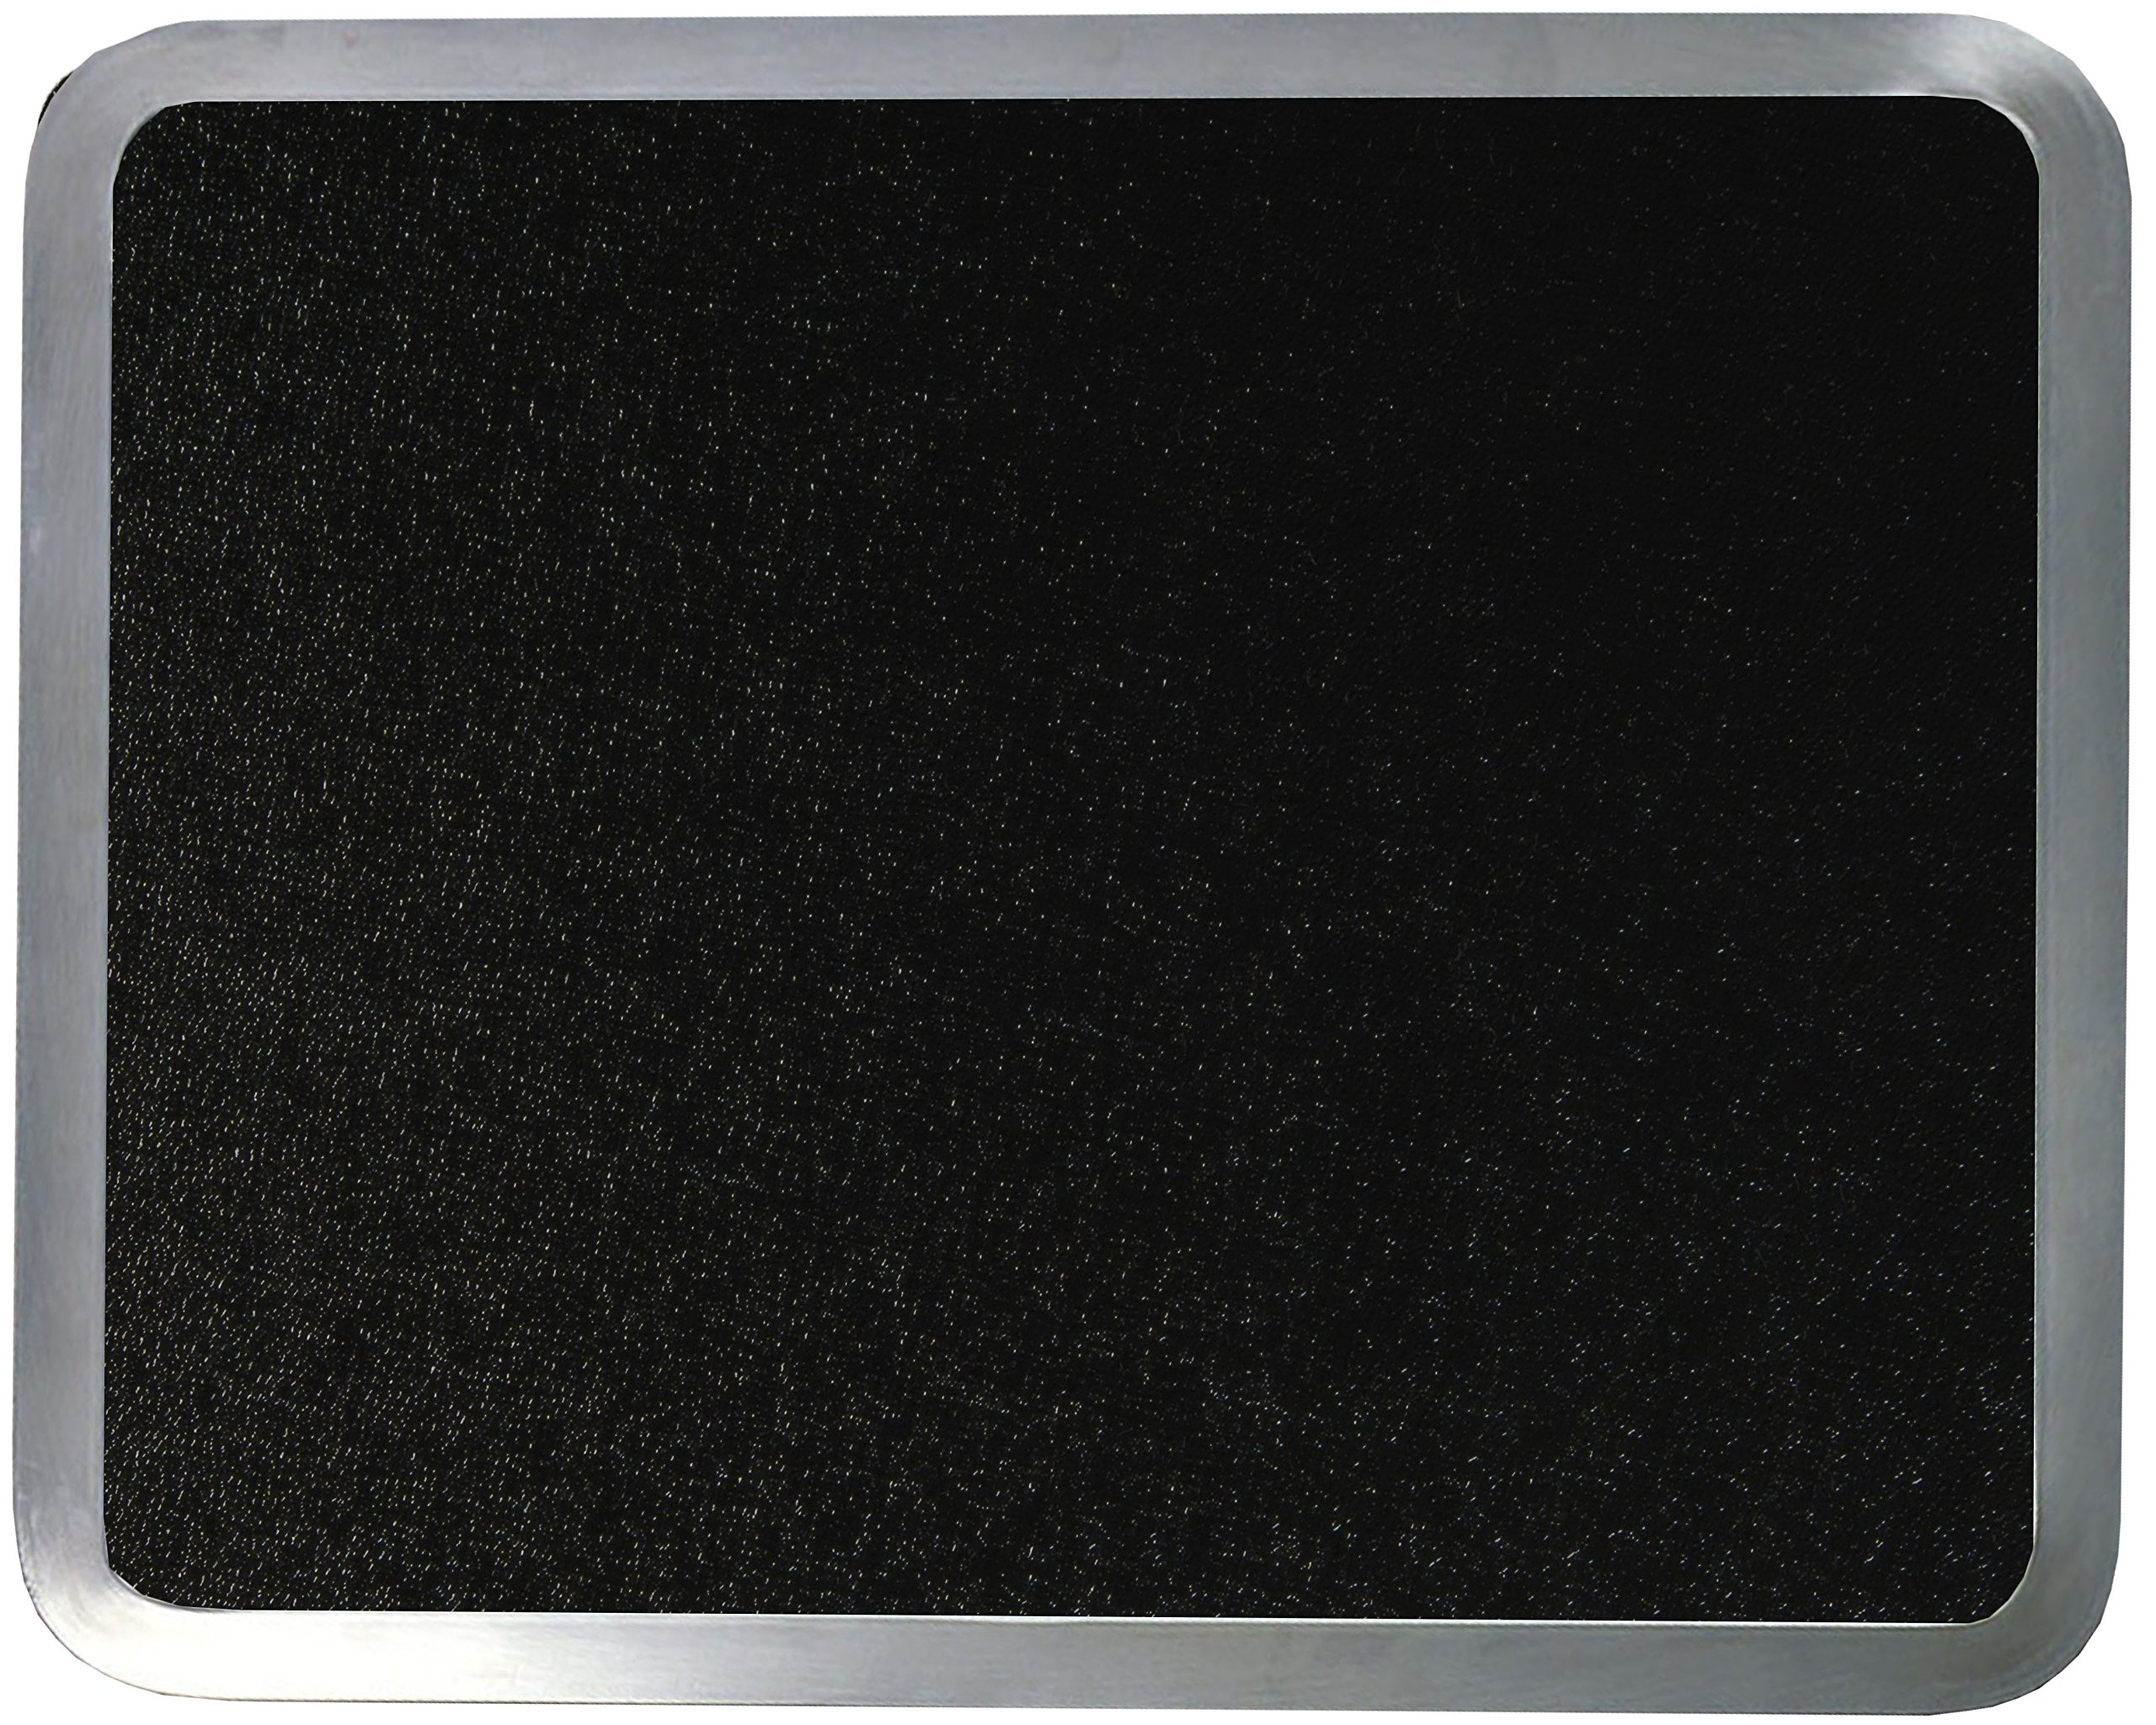 Vance 12 X 15 inch Black Built-in Surface Saver Tempered Glass Cutting Board, 71215BK